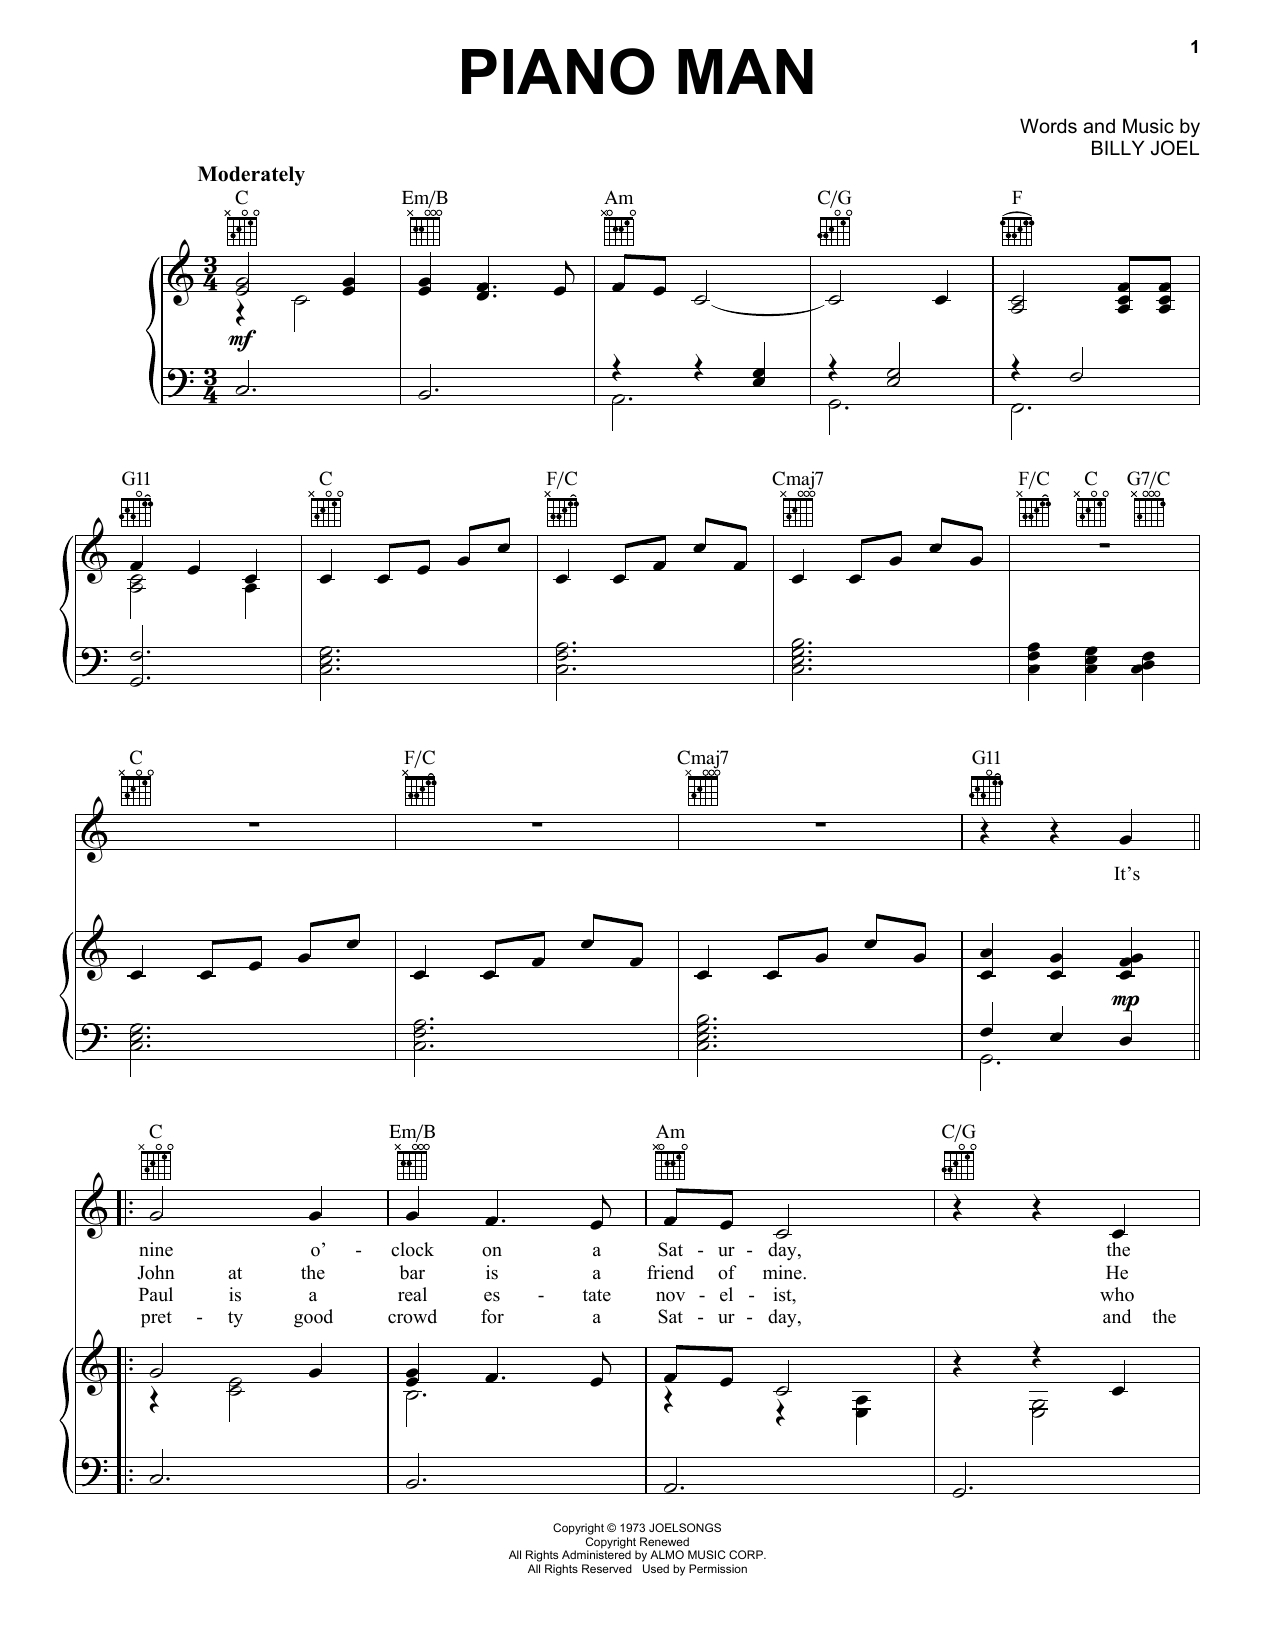 Piano Man Chords Billy Joel Piano Man Sheet Music Notes Chords Download Printable Melody Line Lyrics Chords Sku 195079